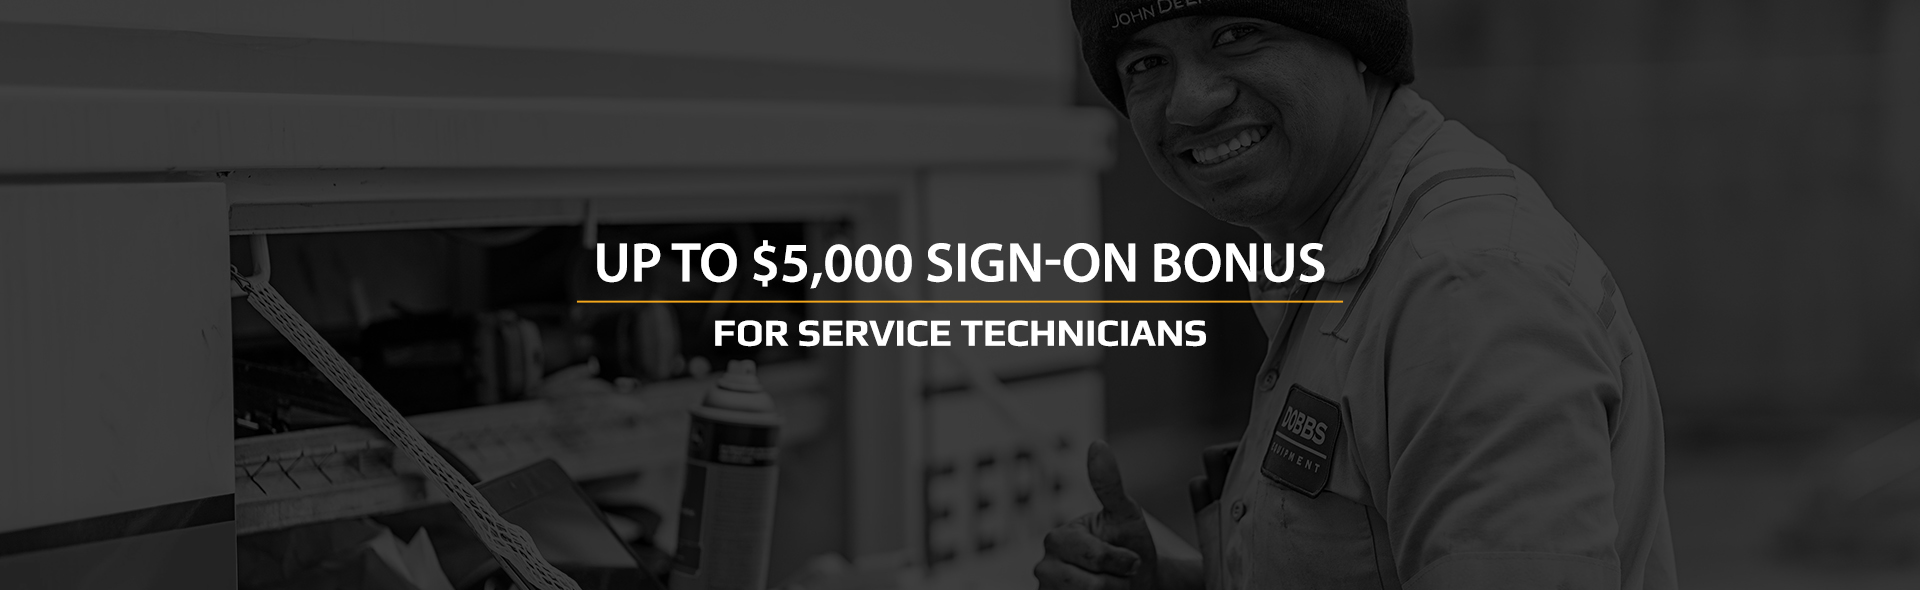 Up to $5,000 sign on bonus for Service Technicians. Find out more!